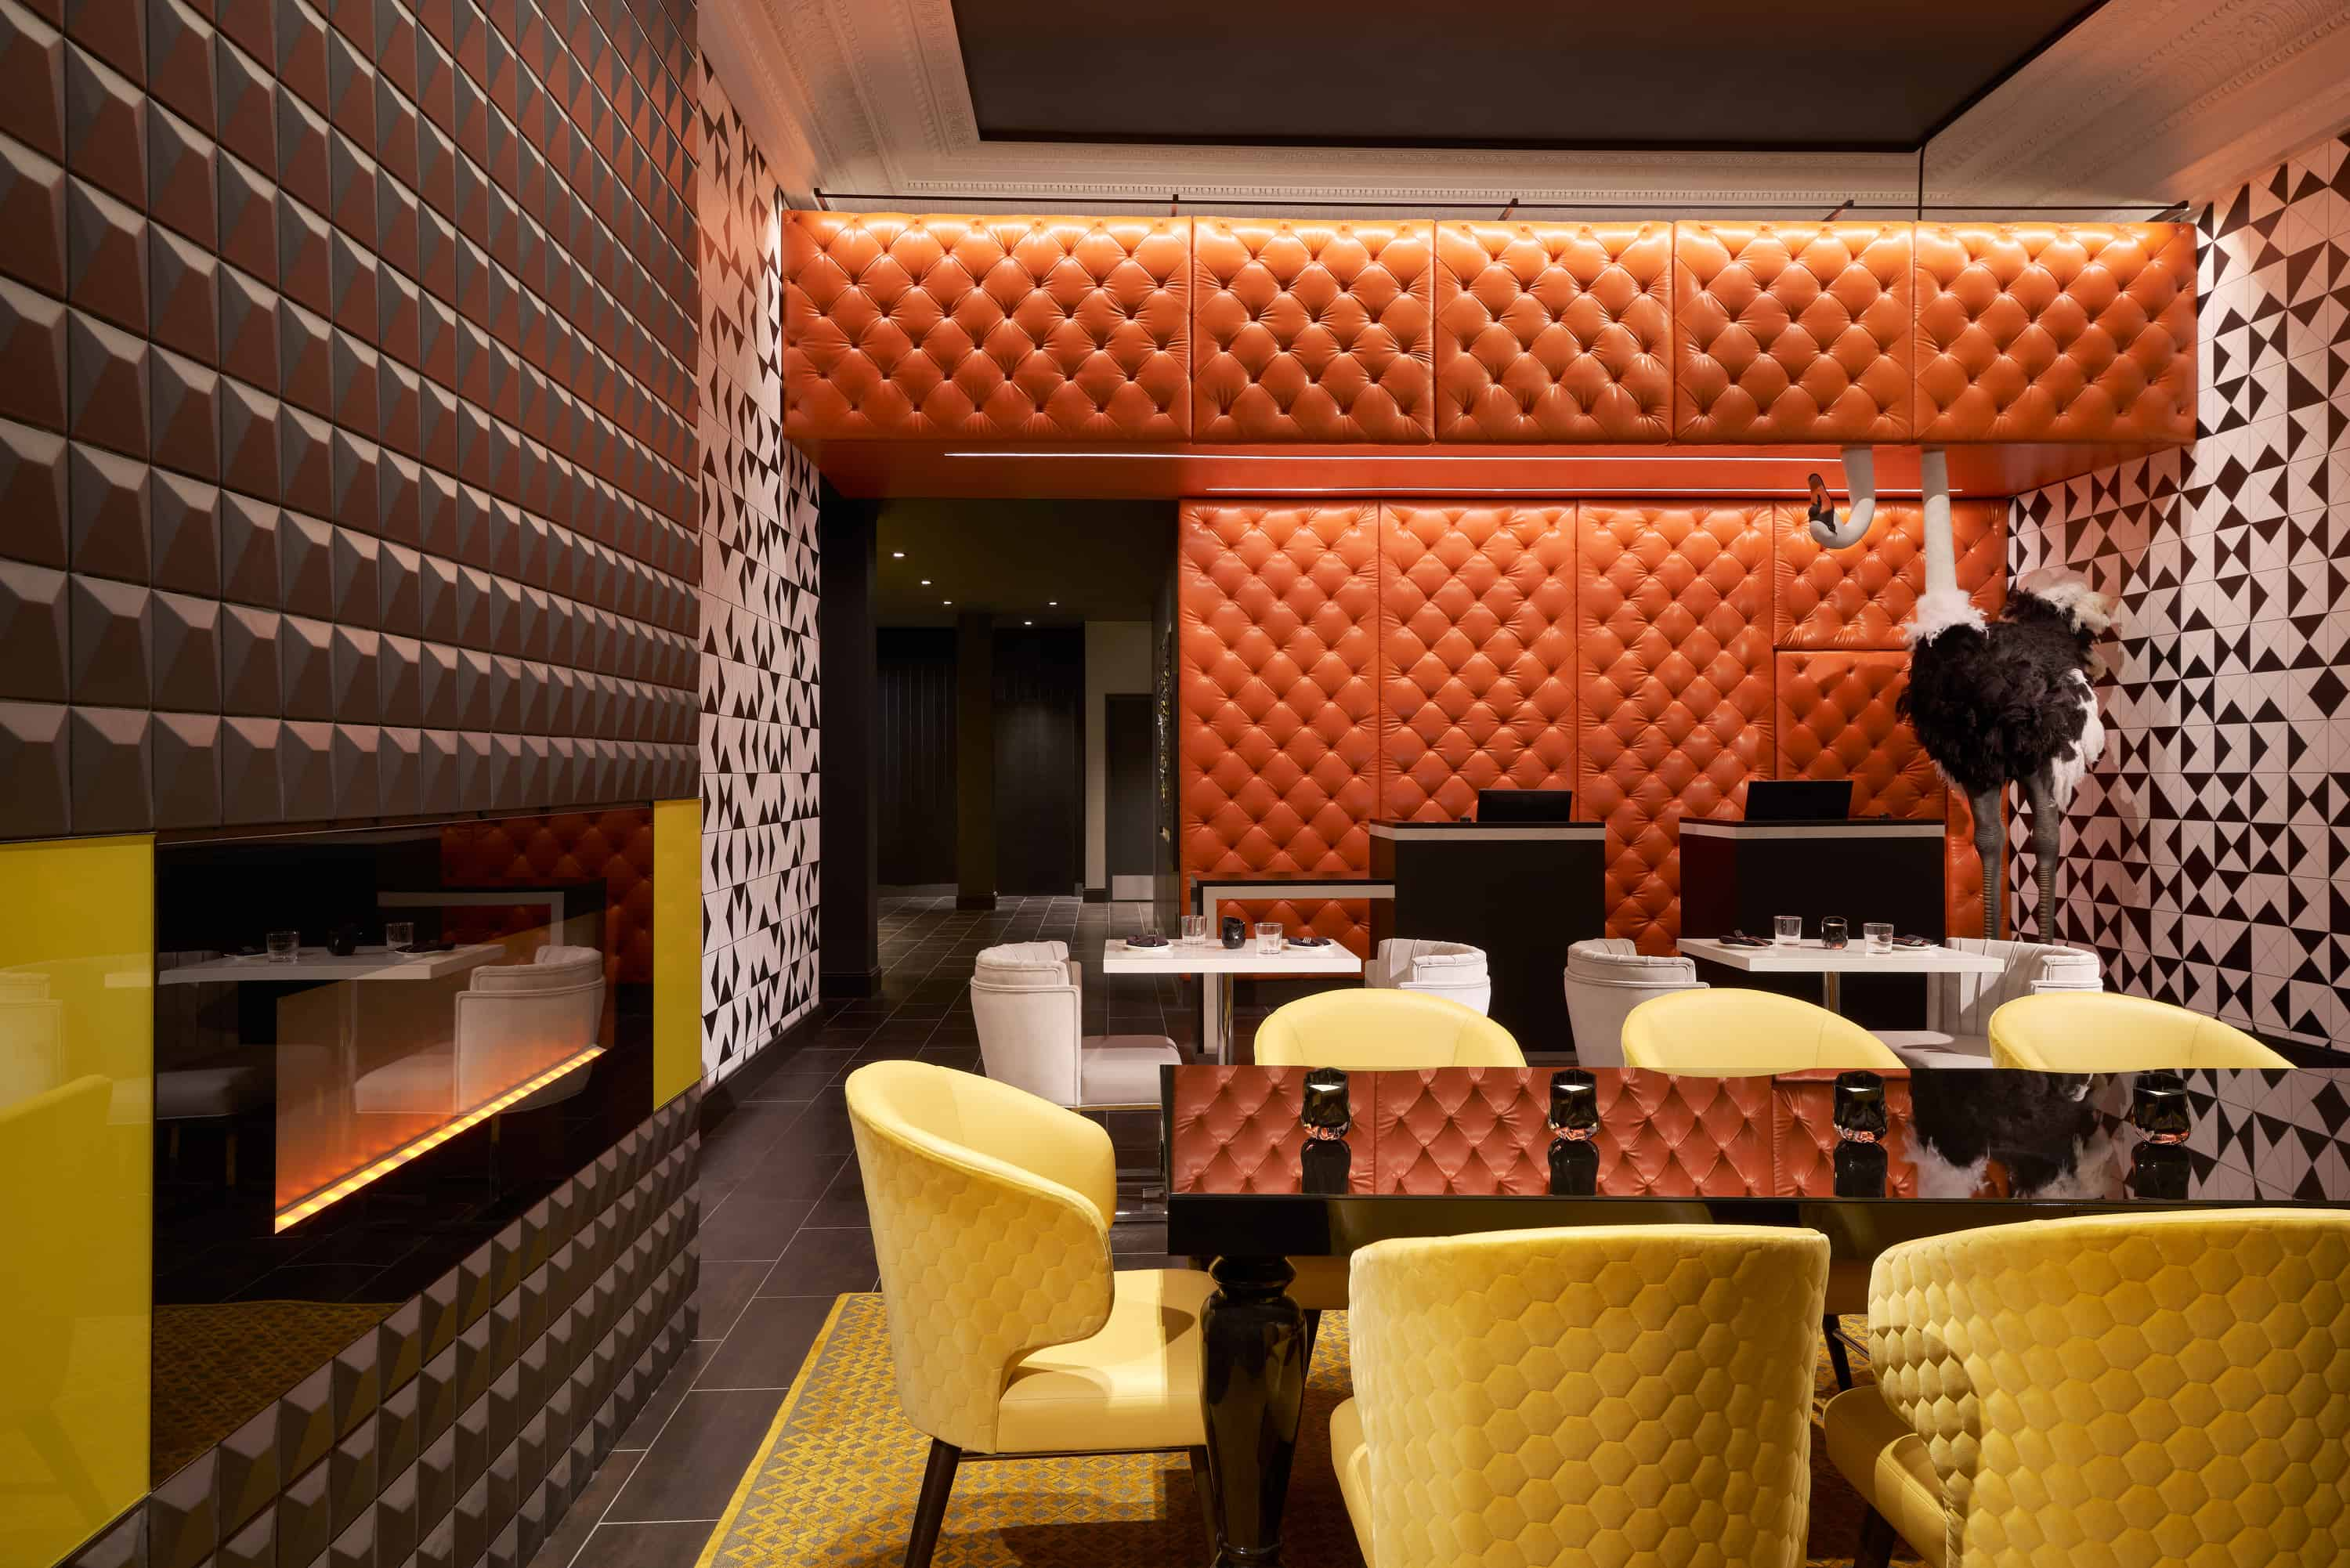 Lobby lounge with yellow chairs, white and black patterned walls and fireplace.